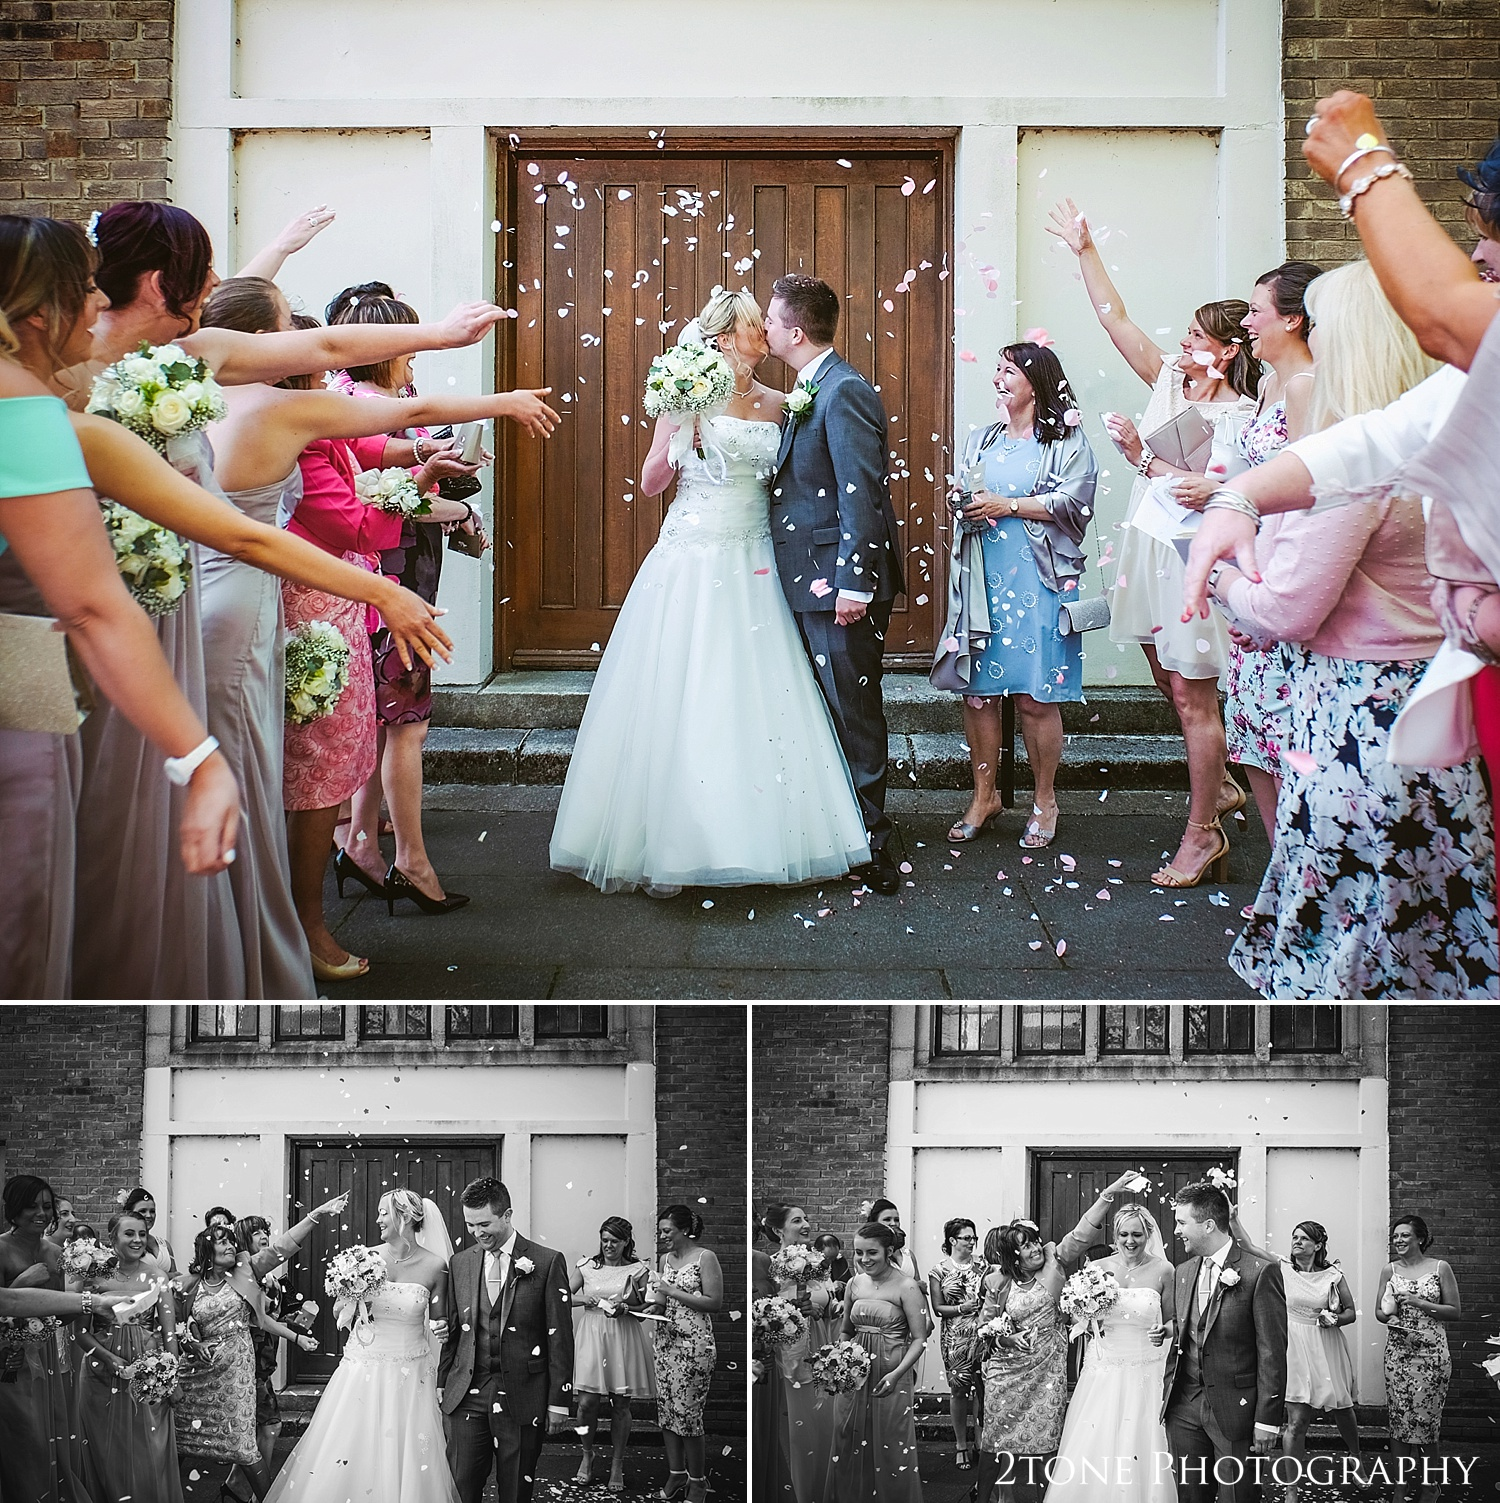 Wedding confetti at St Cuthberts Seaham, wedding photography by www.2tonephotography.co.uk